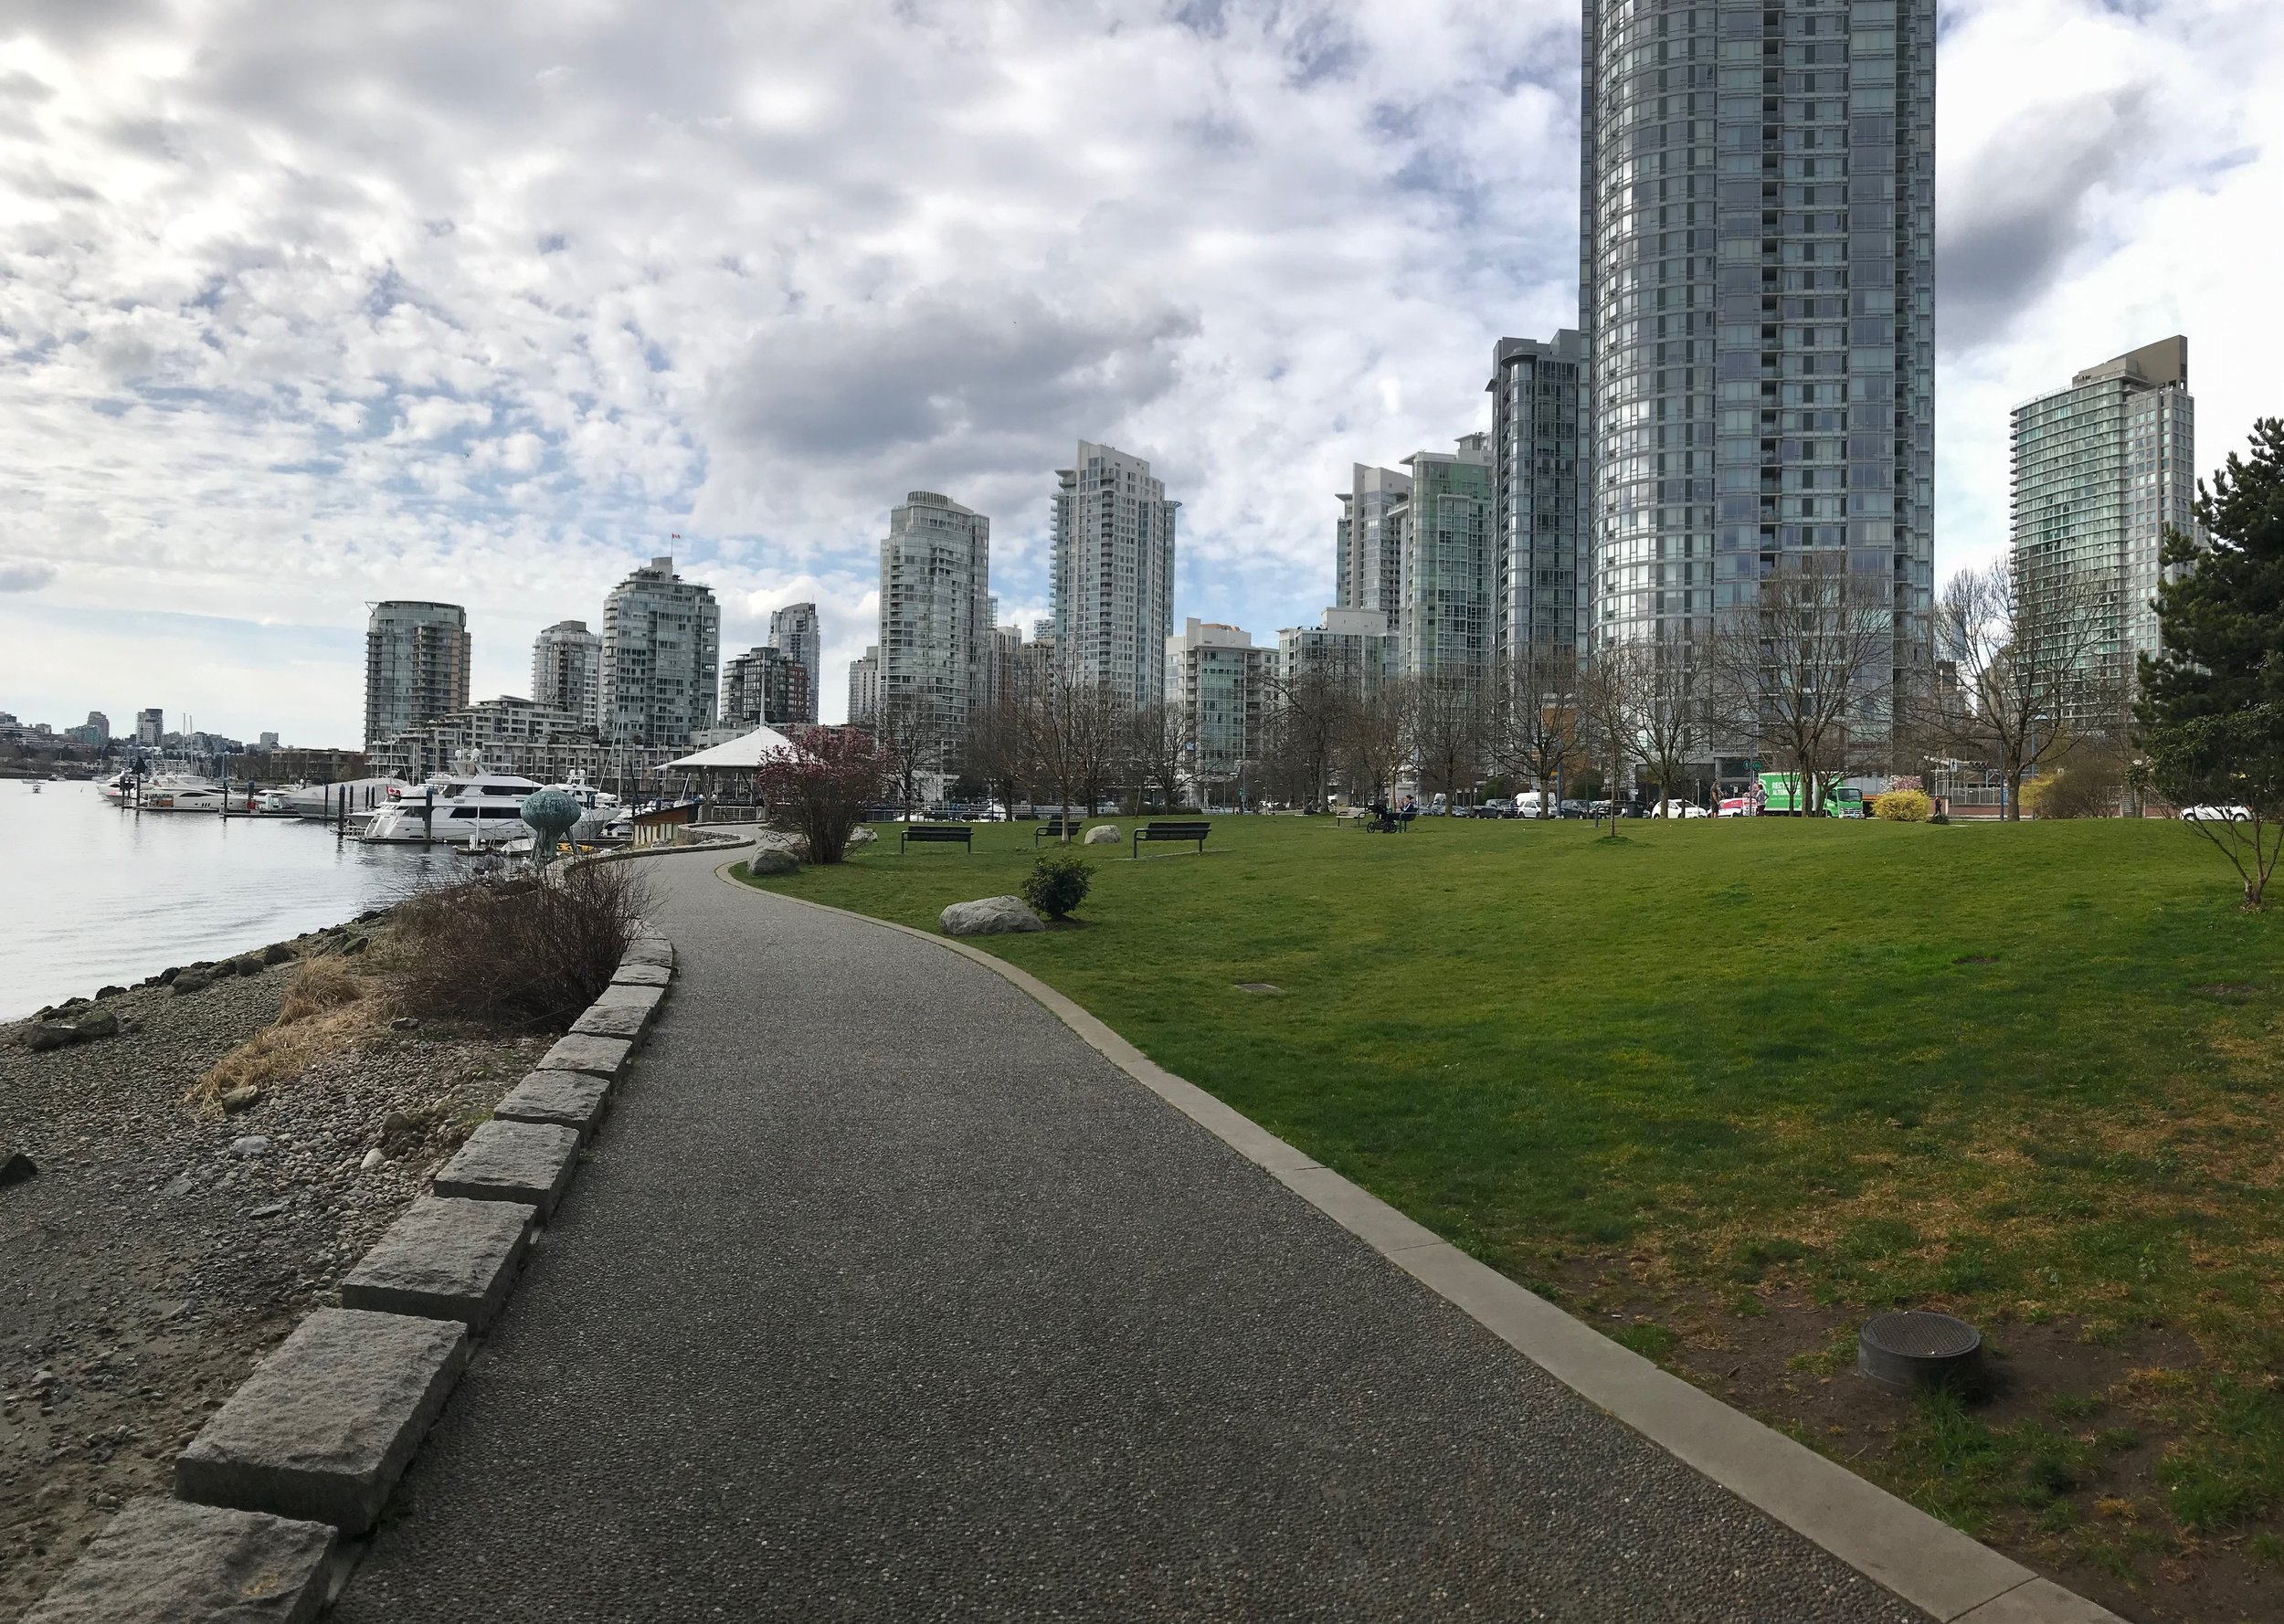 There are several parks located along Yaletown's pathway.